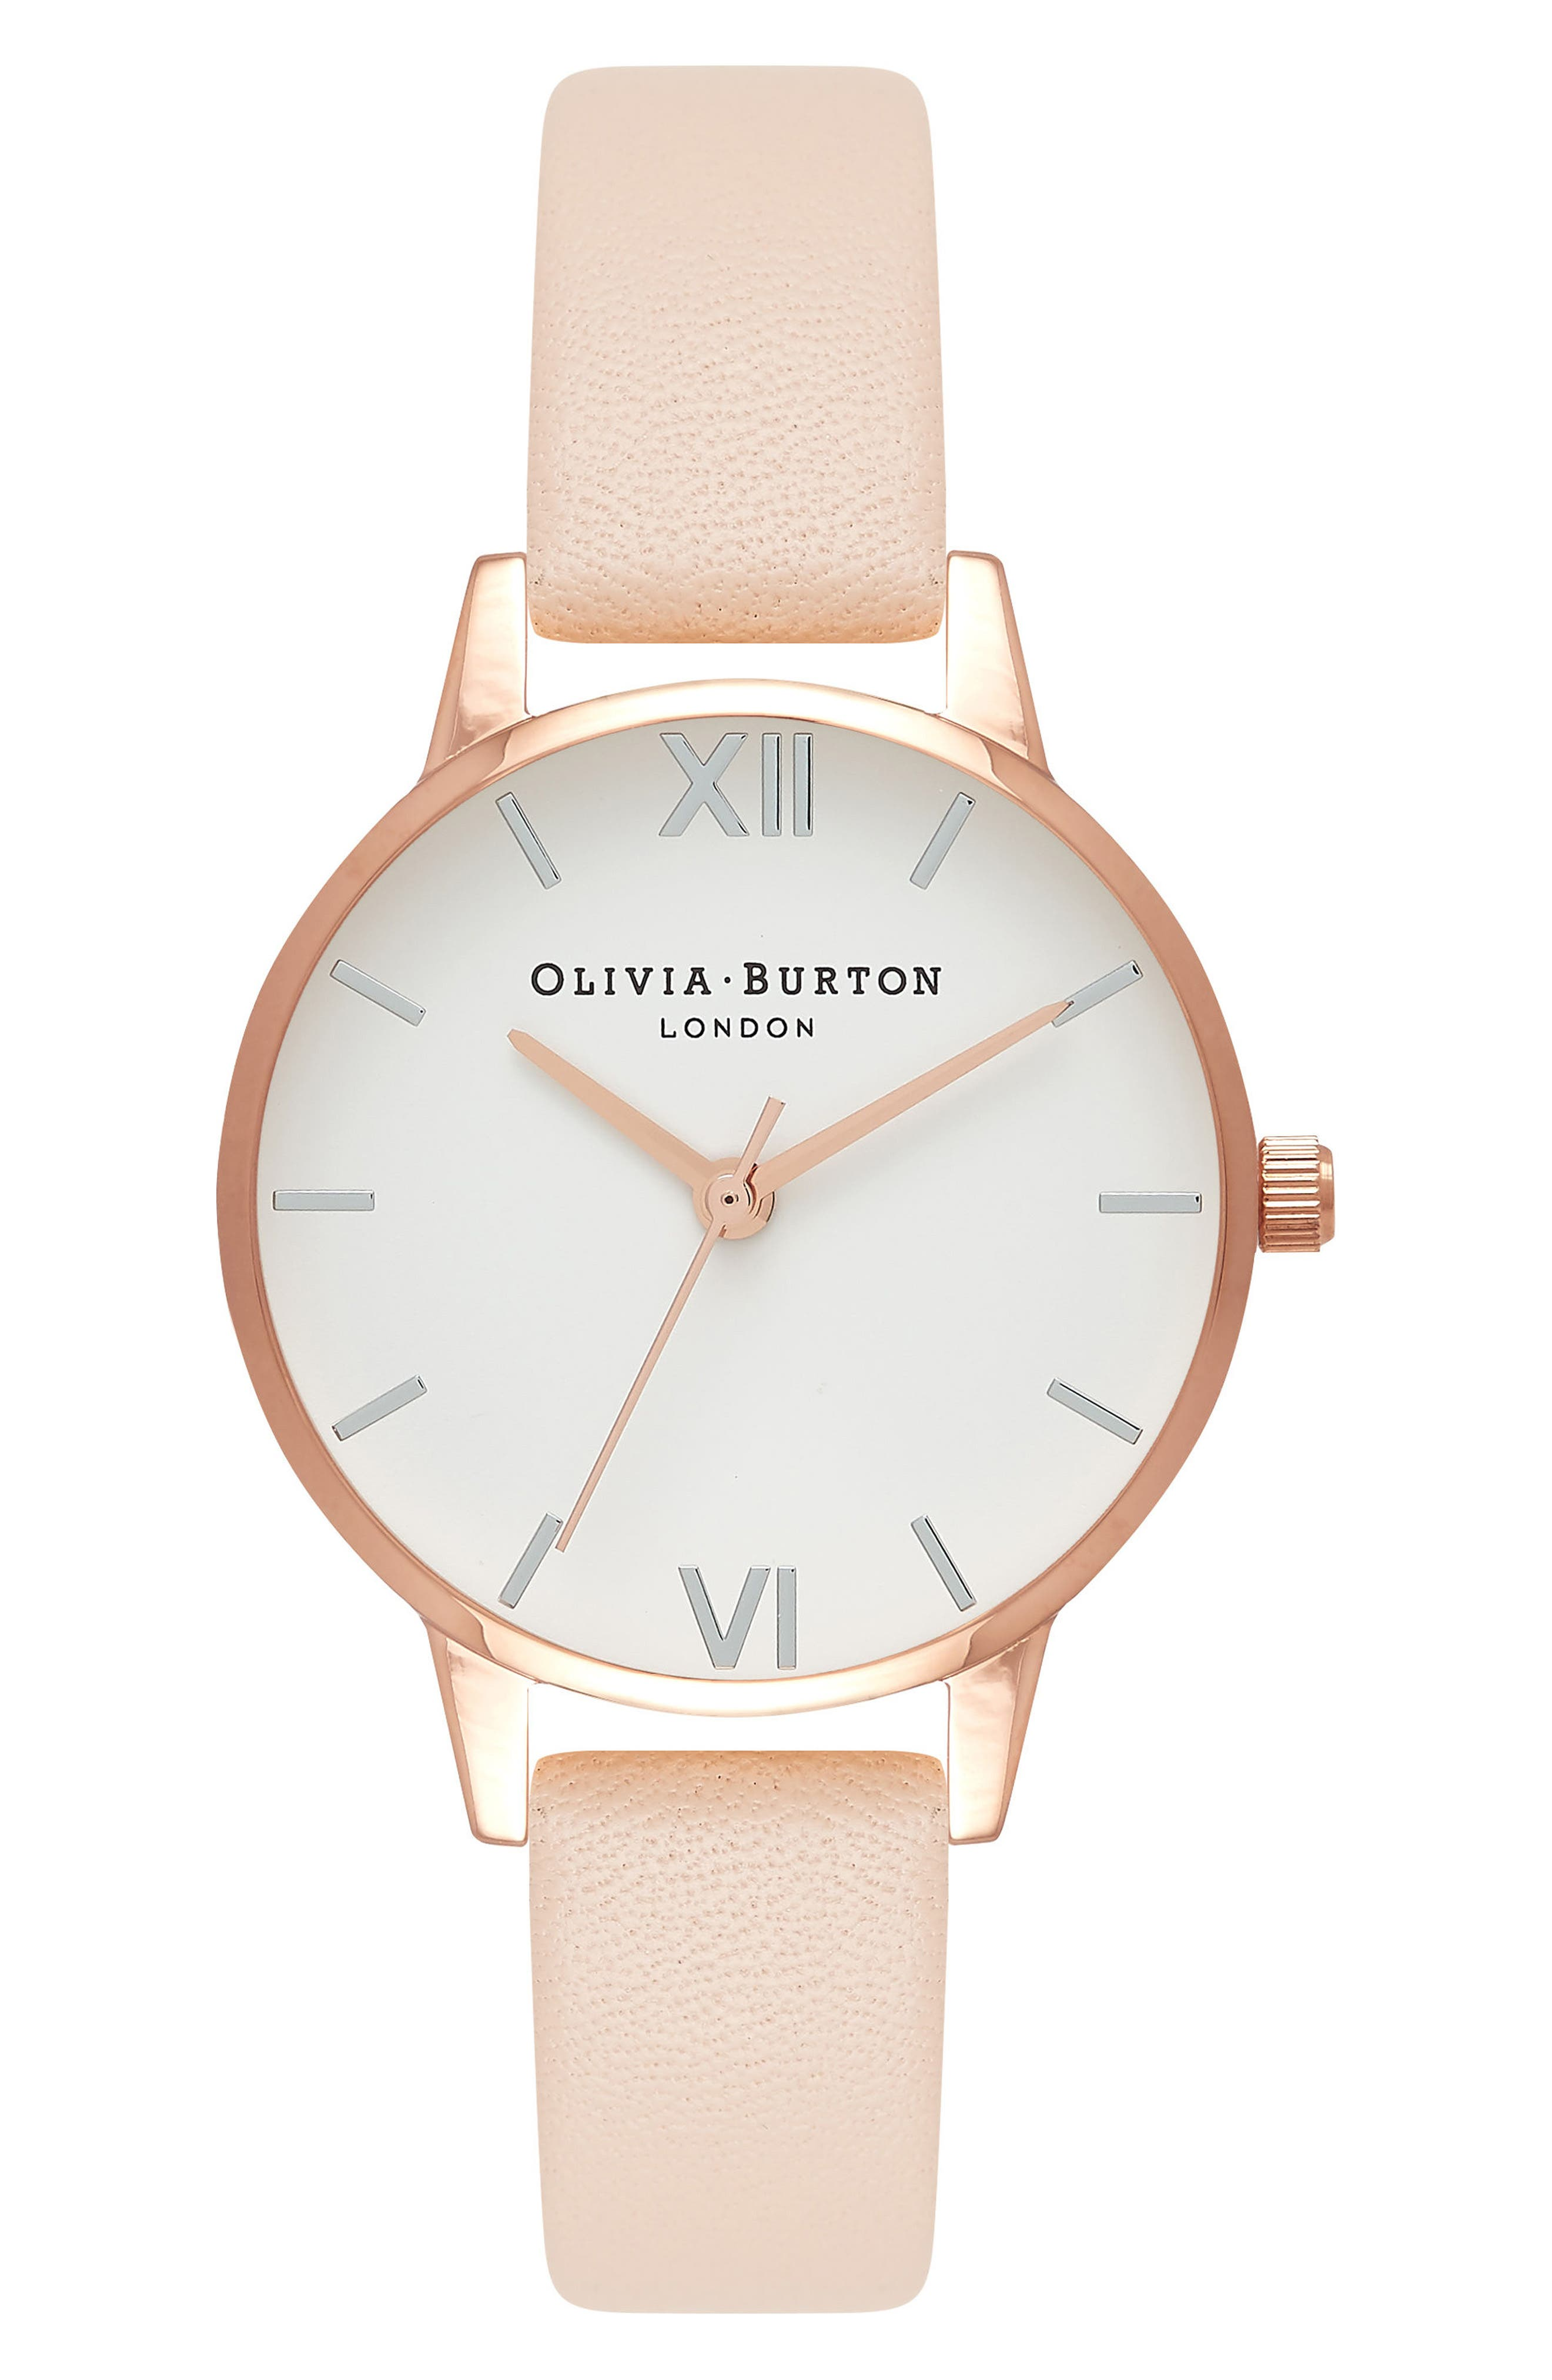 OLIVIA BURTON,                             Midi Dial Leather Strap Watch, 30mm,                             Main thumbnail 1, color,                             NUDE PEACH/ WHITE/ ROSE GOLD